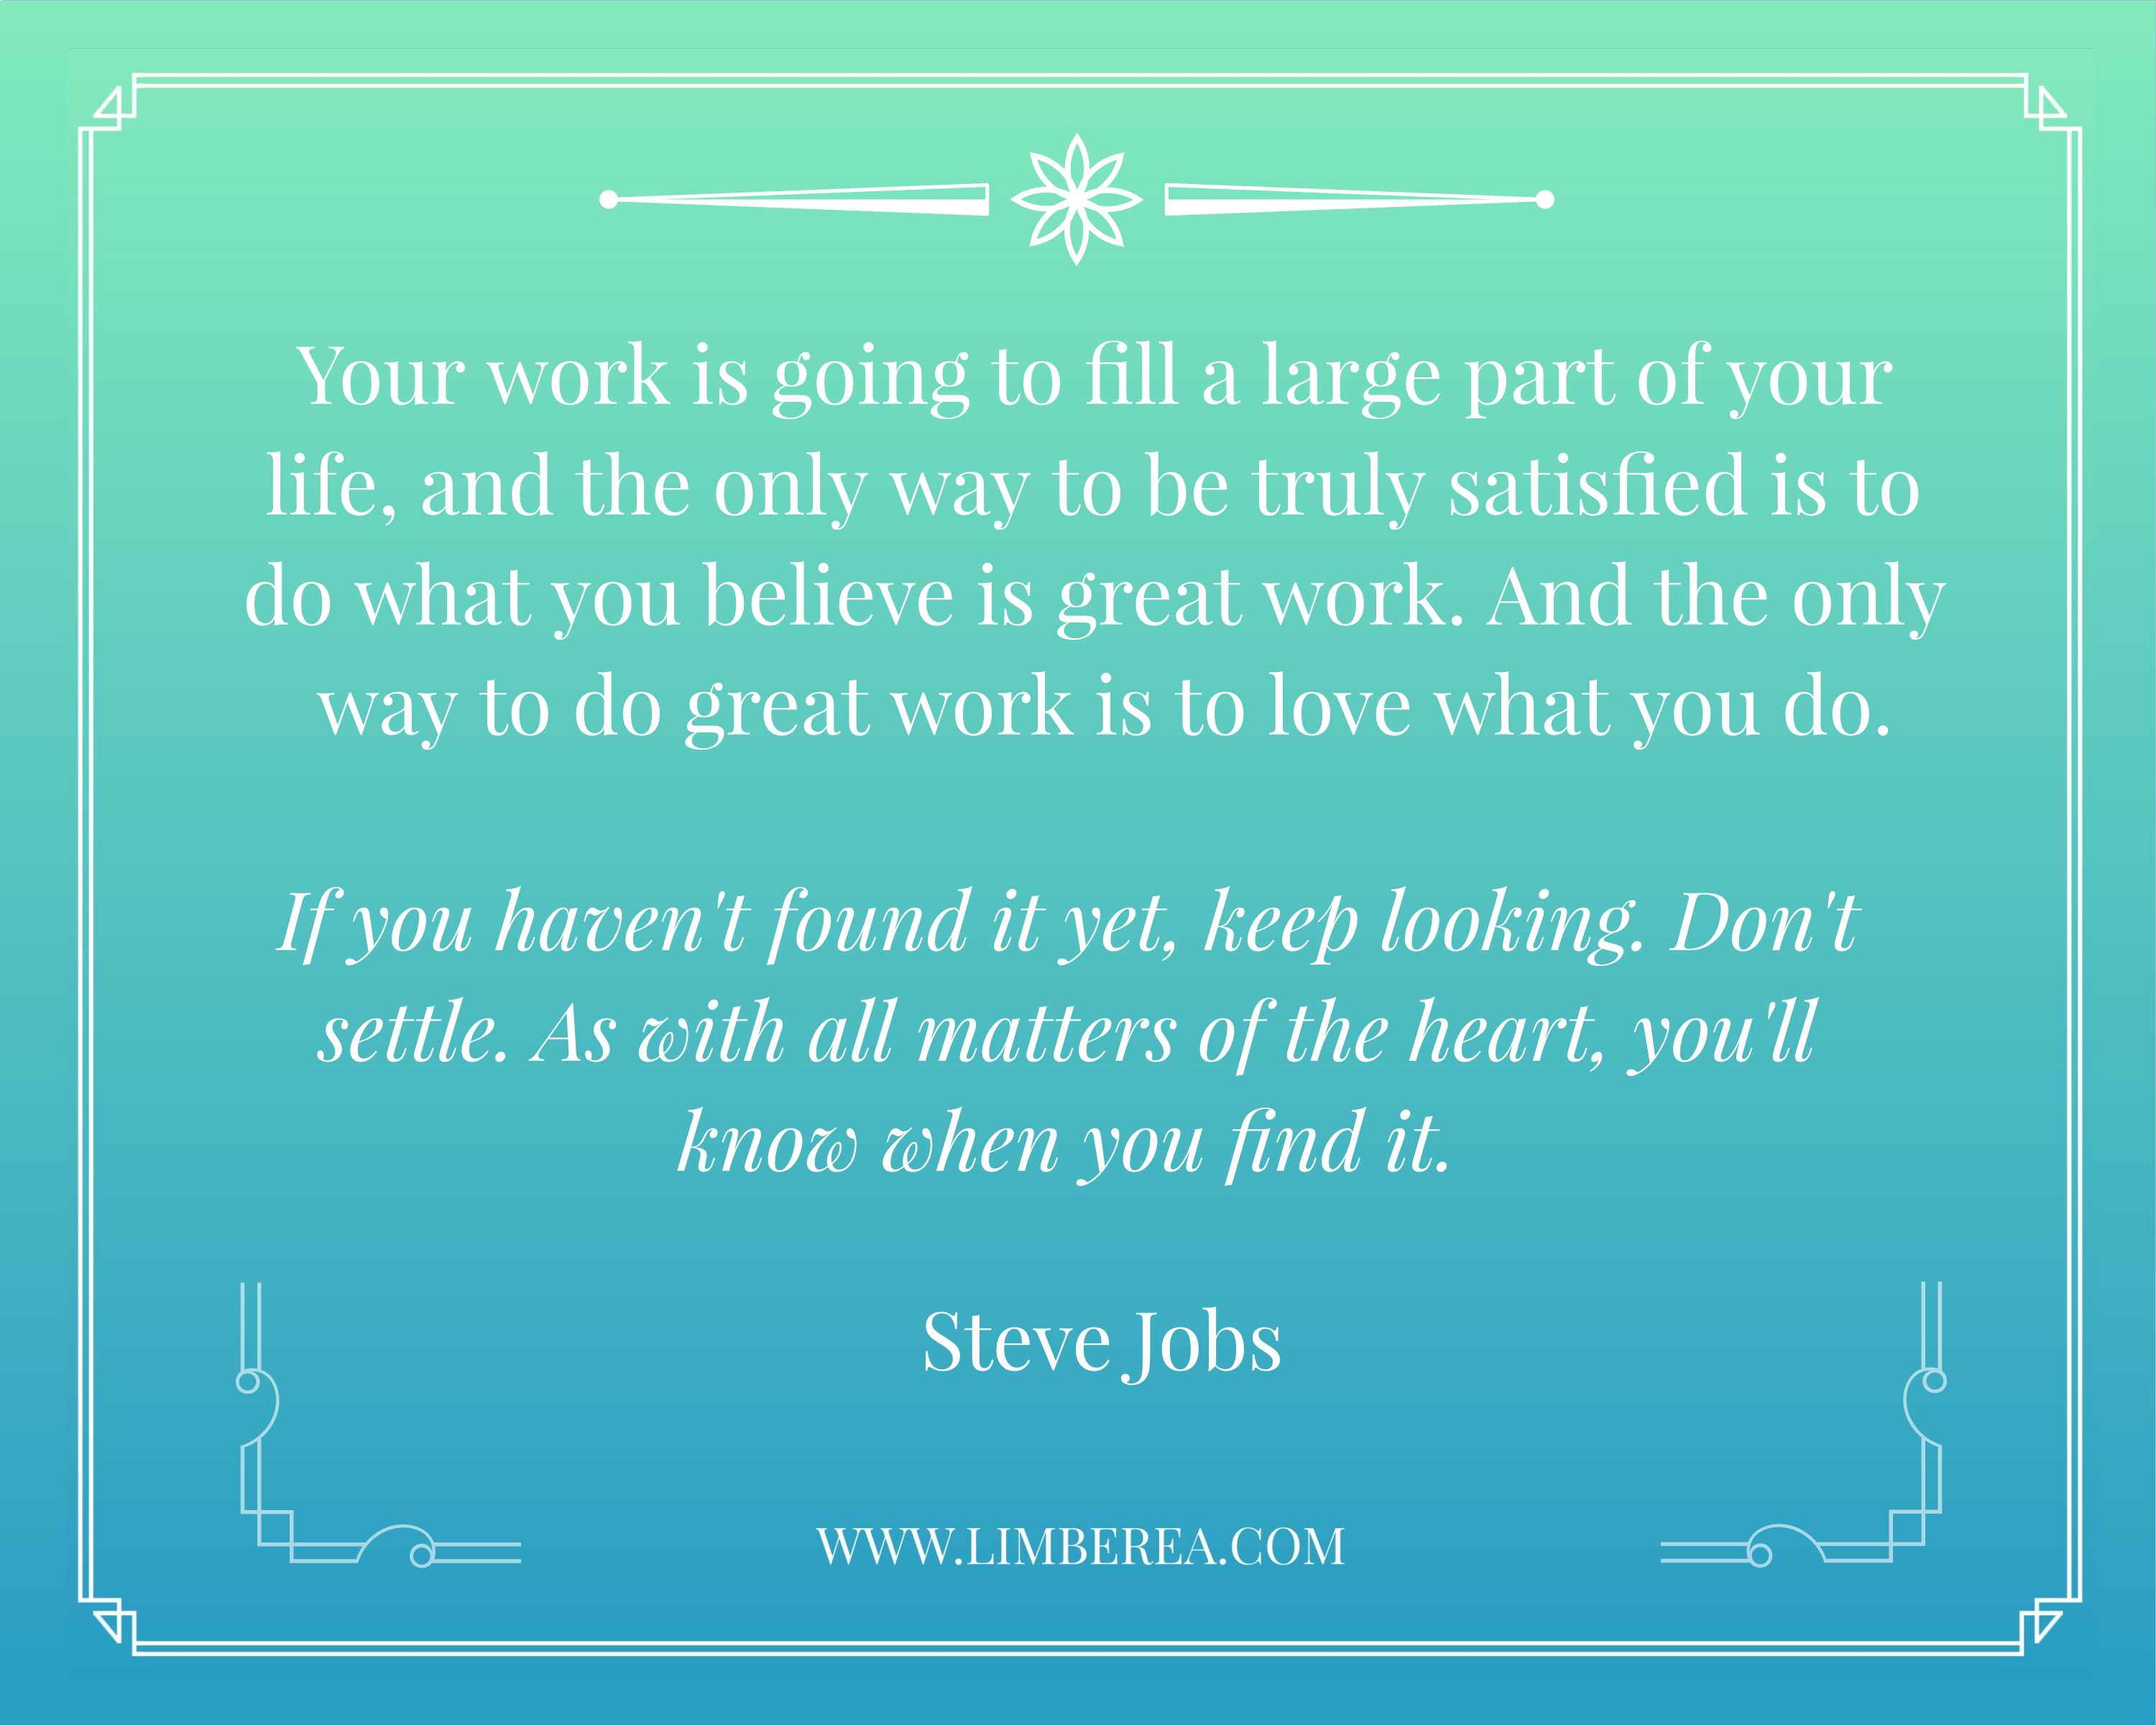 Steve Jobs quote on loving what you do